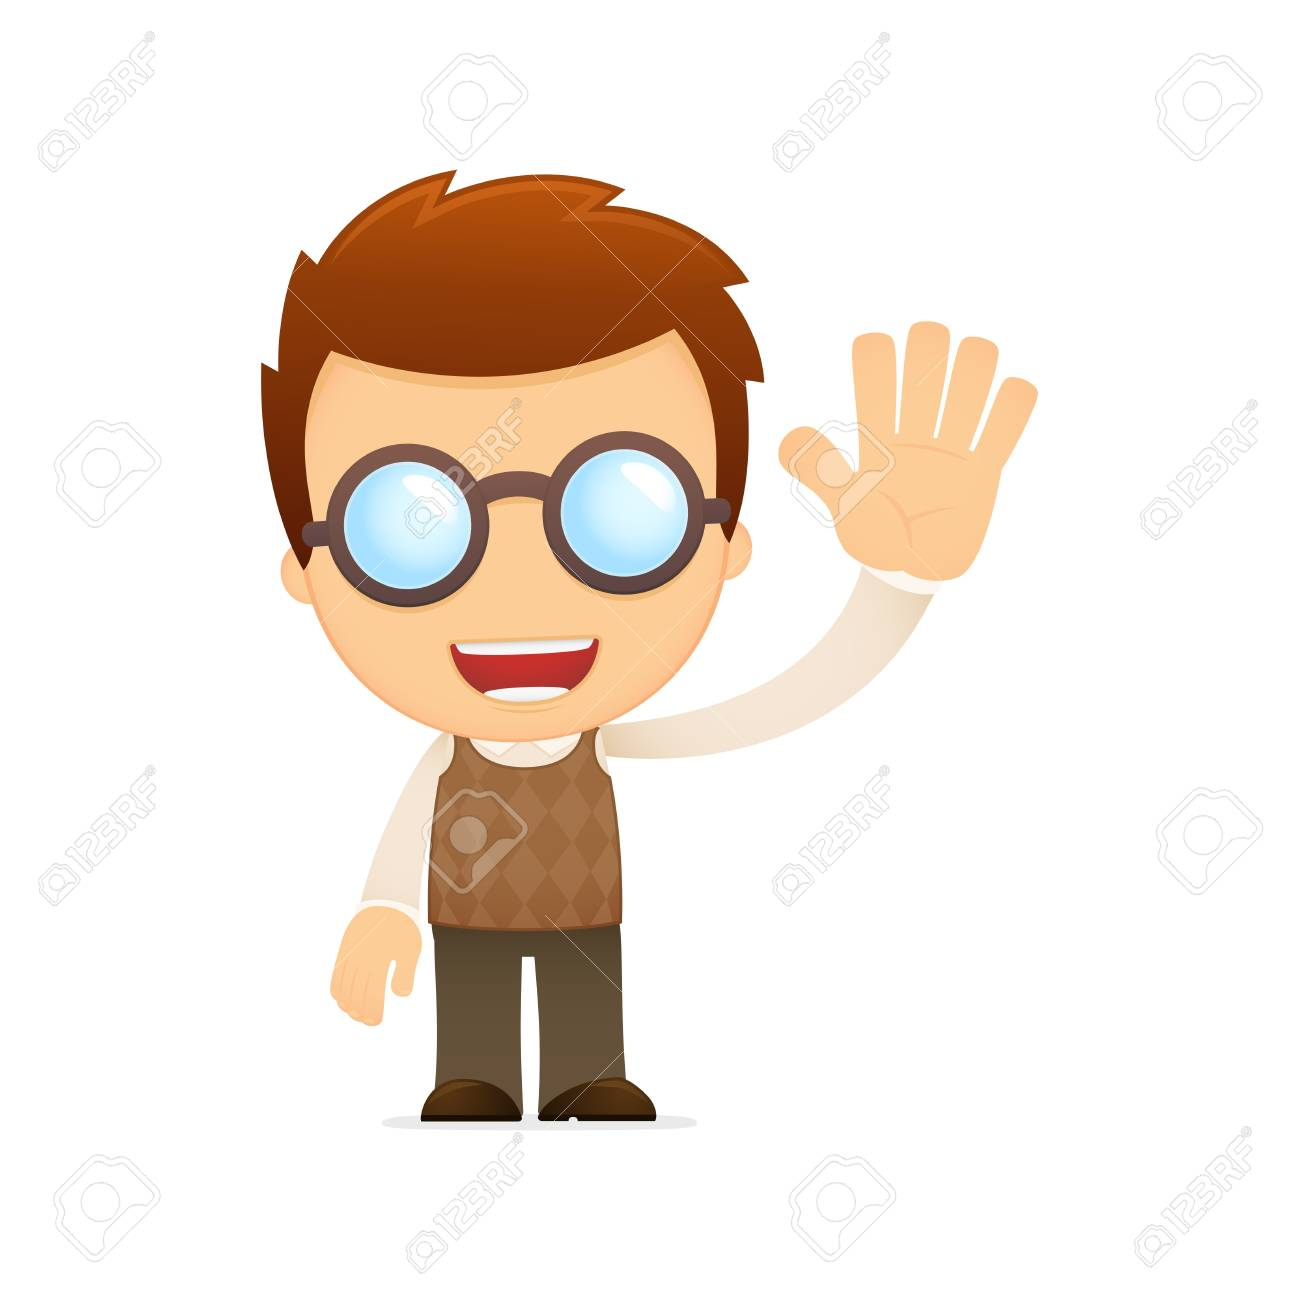 funny cartoon genius Stock Vector - 13697391